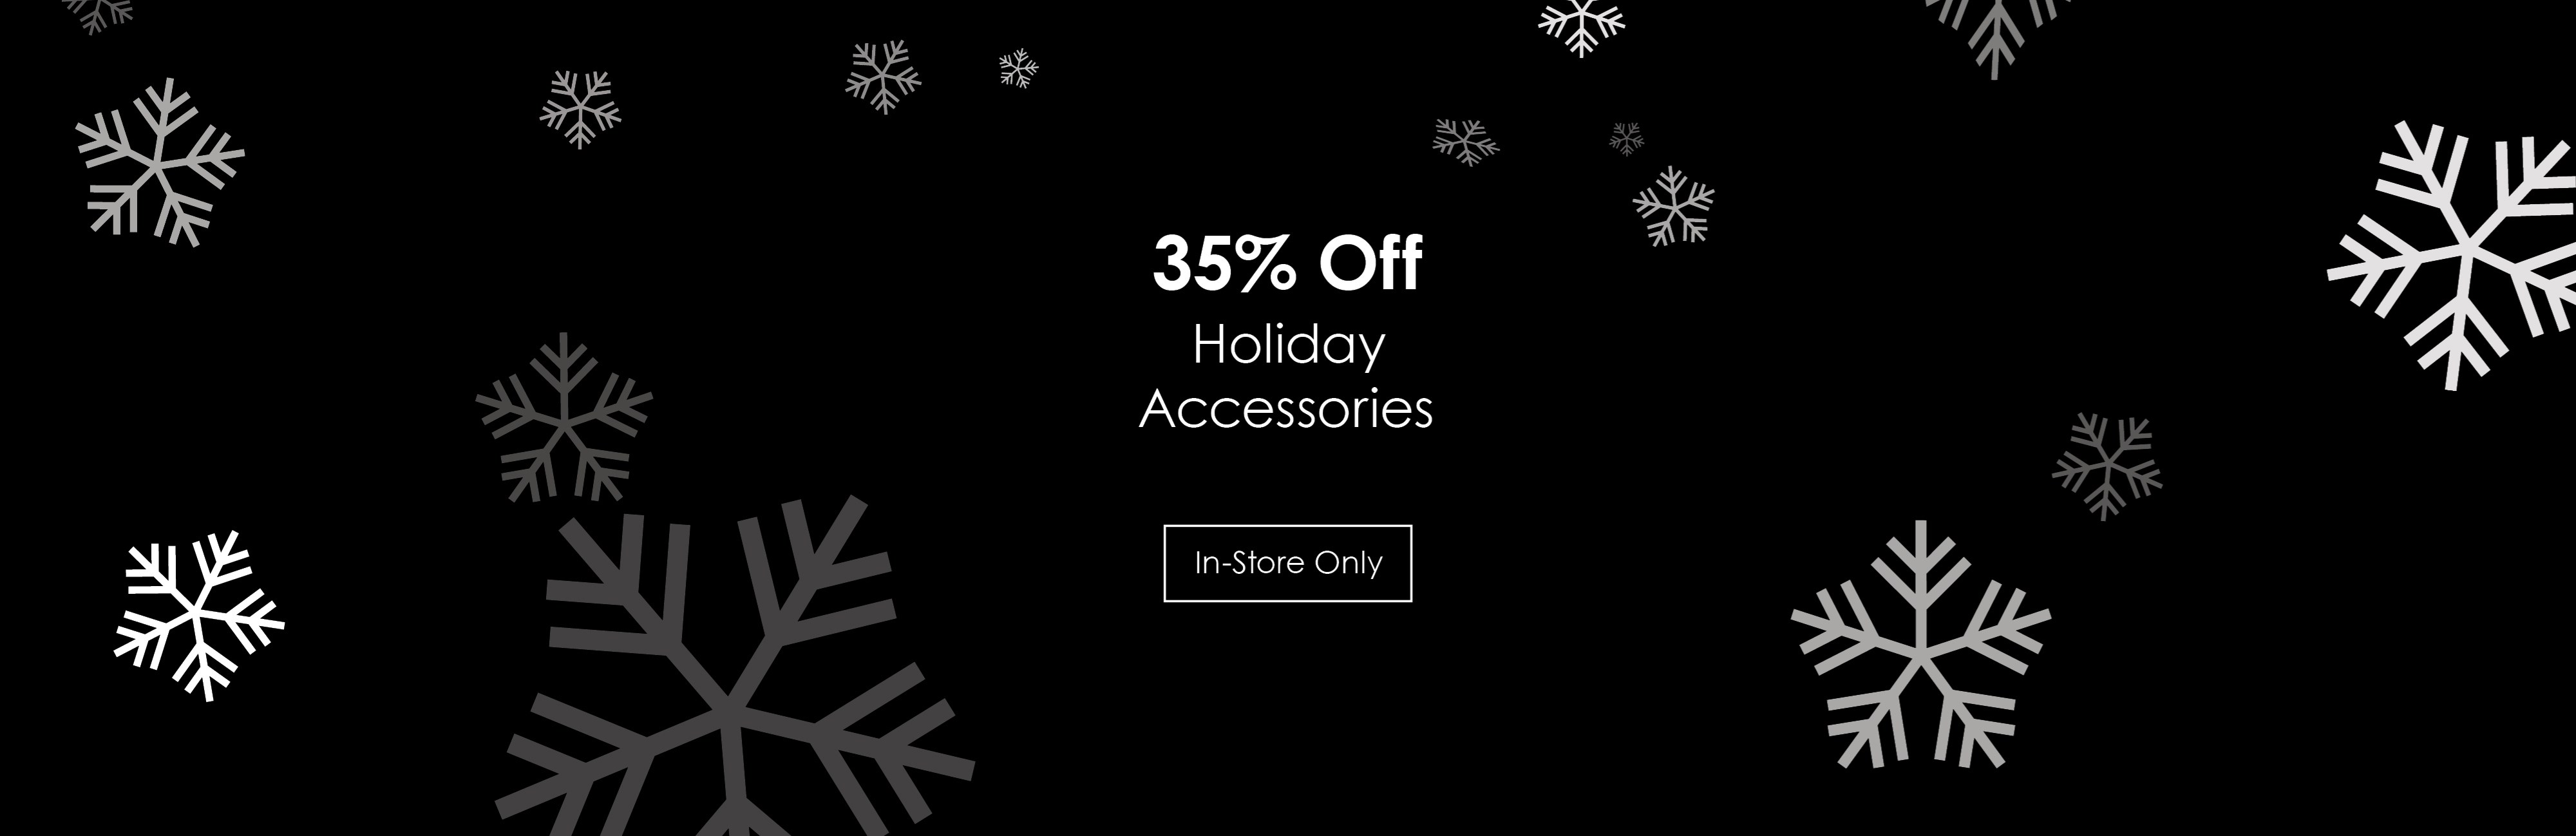 35% off holiday accessories; see store for details.